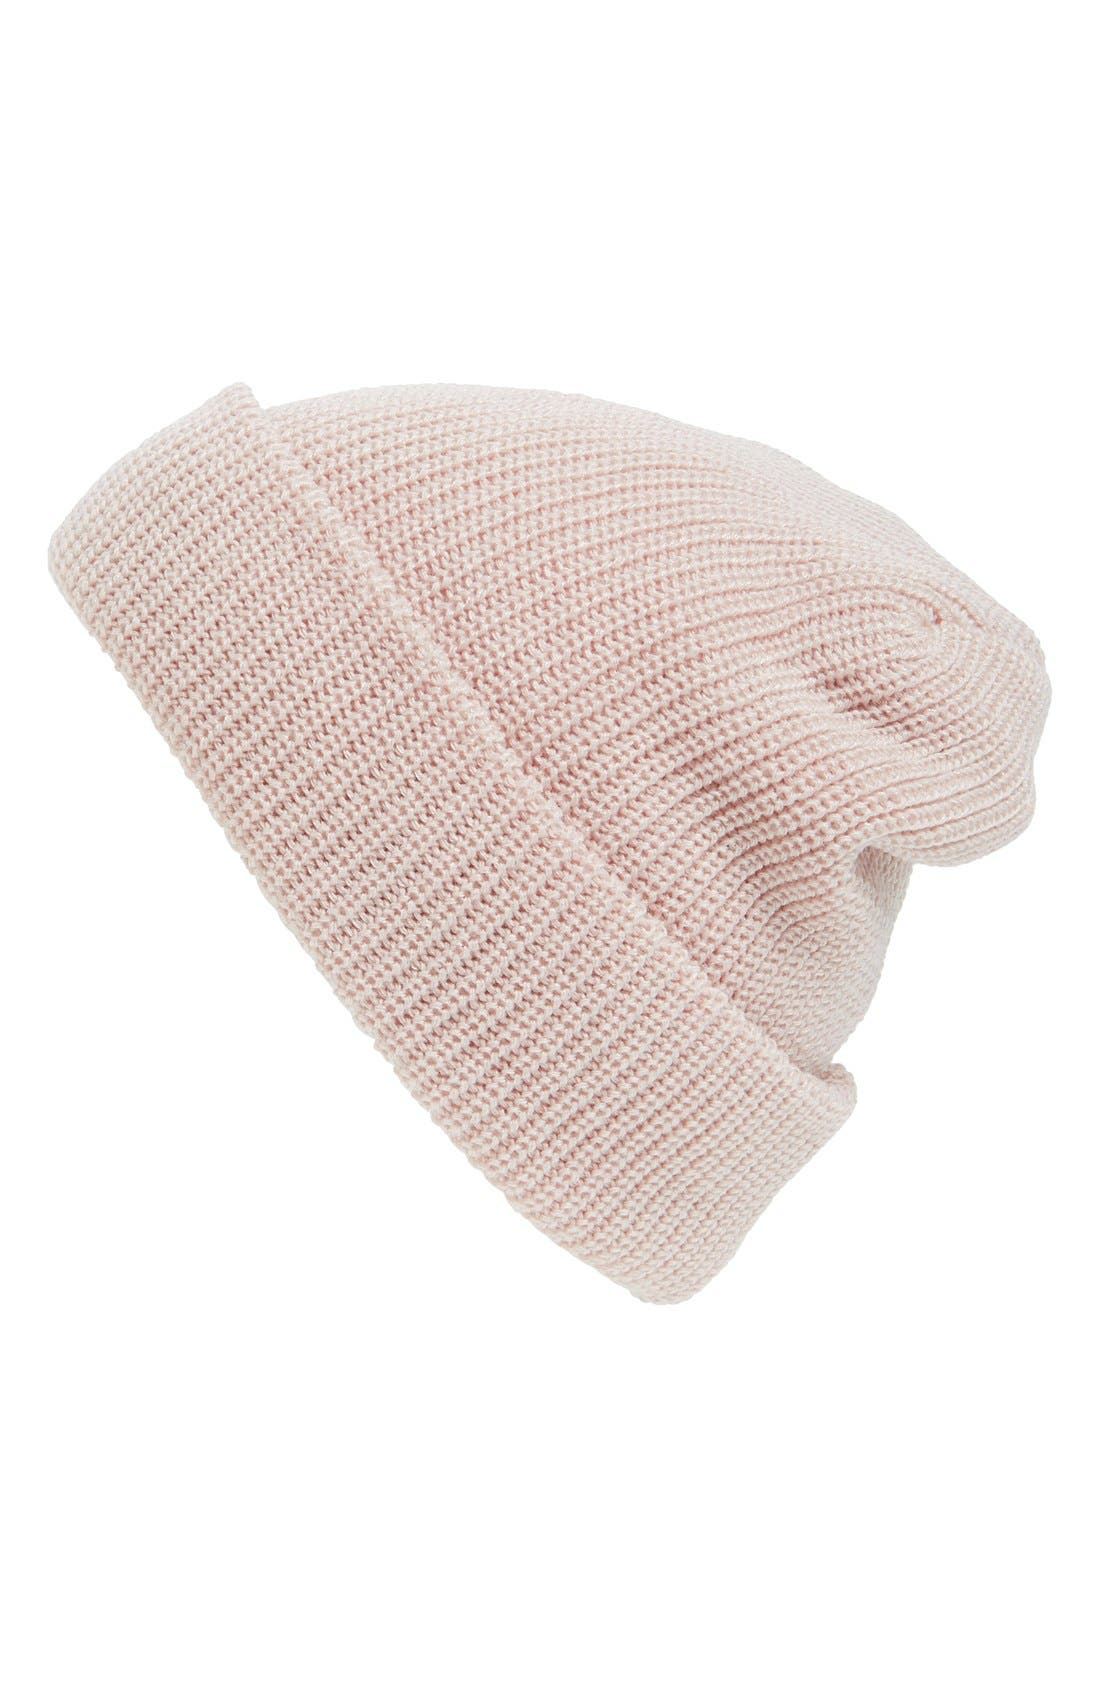 Alternate Image 1 Selected - Hinge Slouchy Cuff Beanie